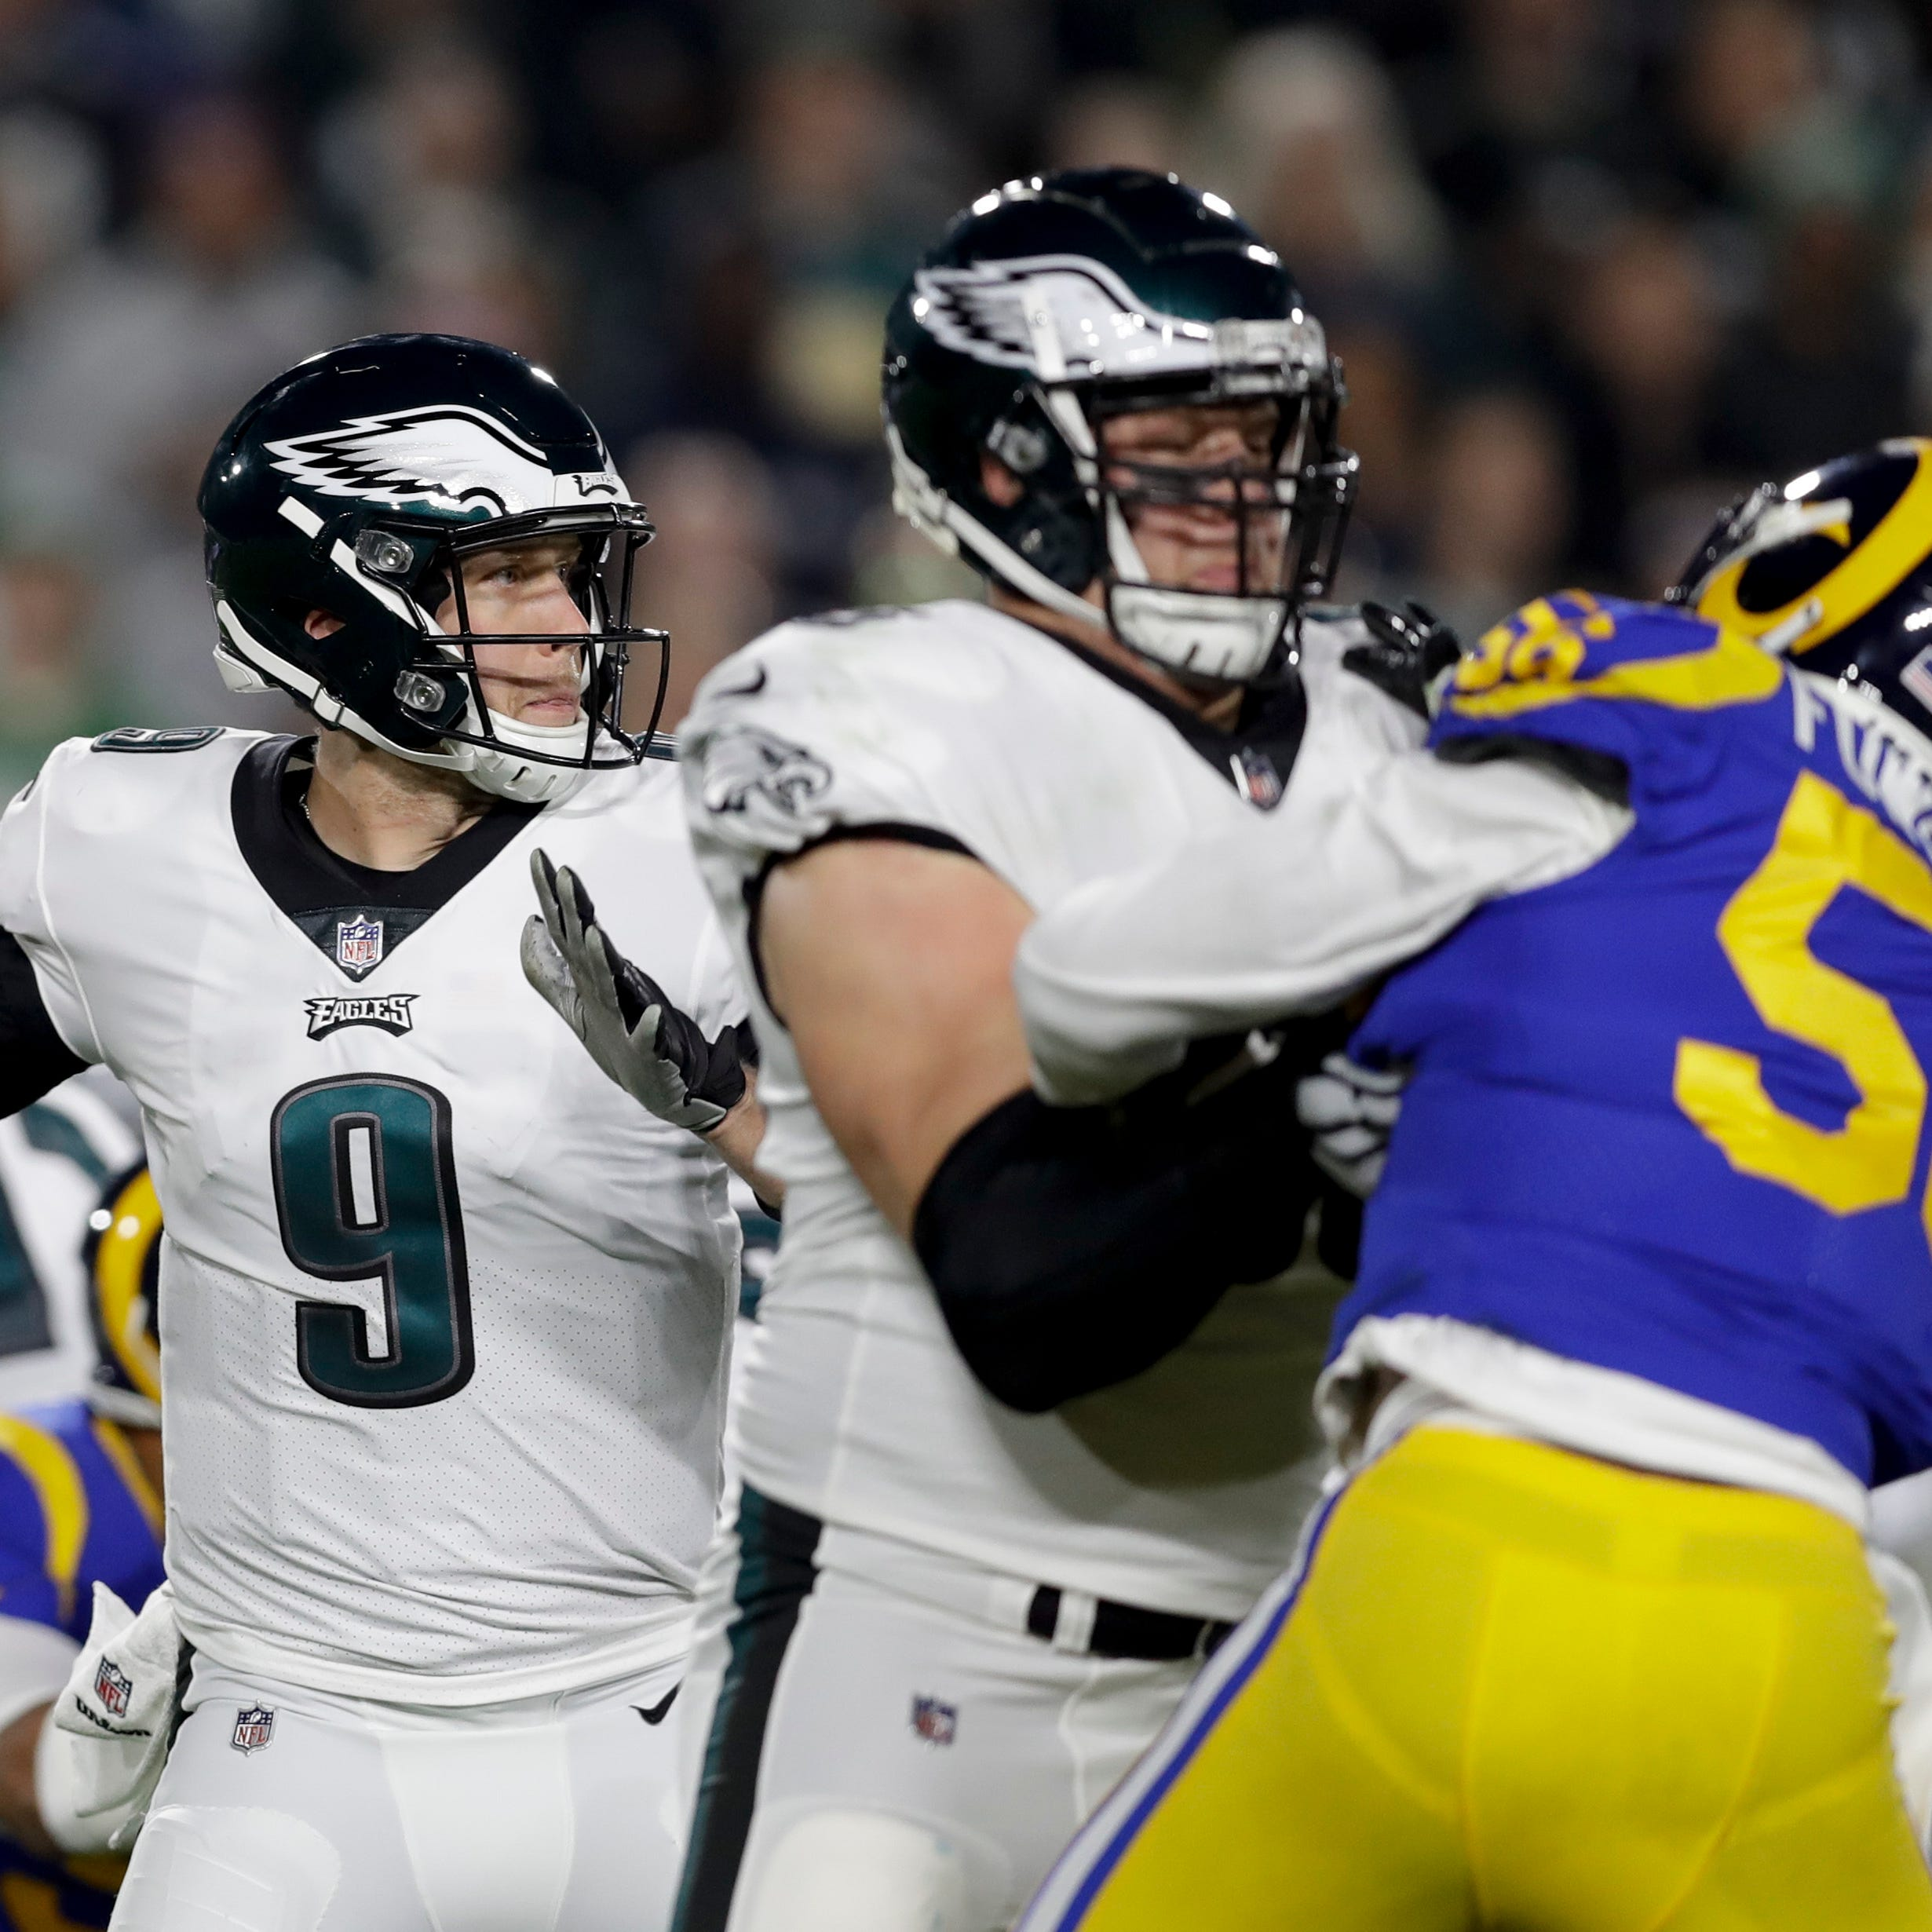 Do the Eagles have a QB controversy between Wentz and Foles? Not if you look closely